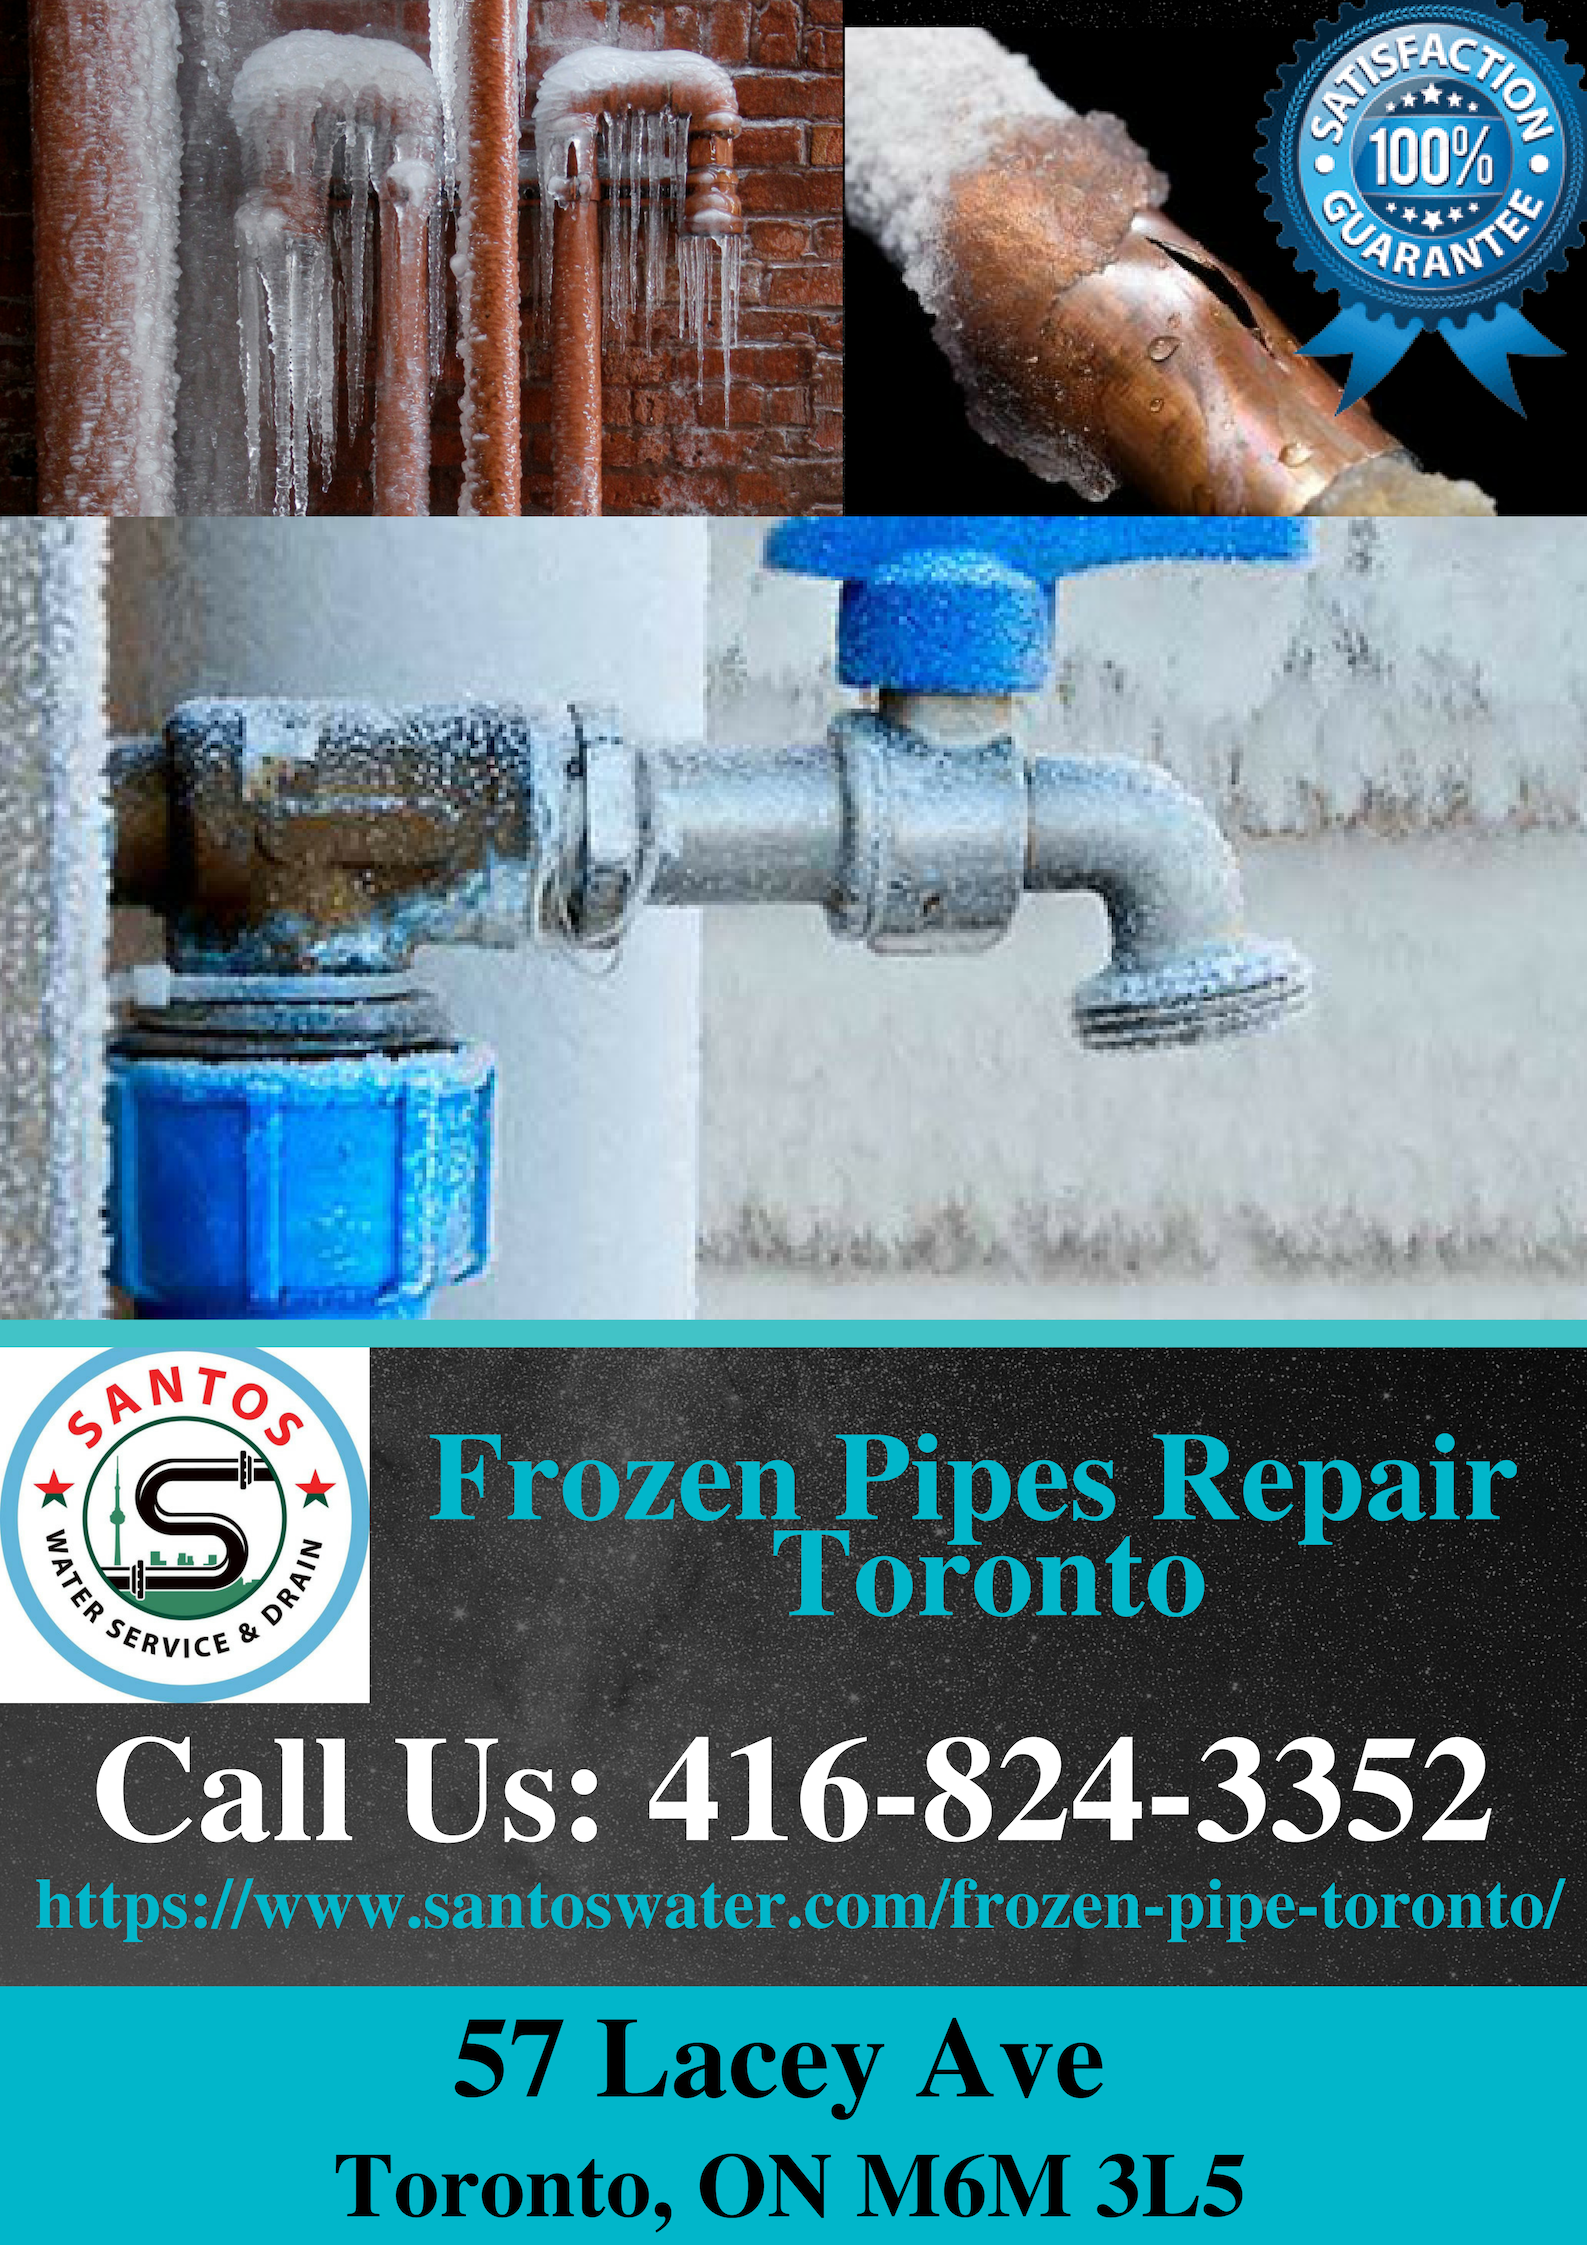 Looking For Frozen Pipes Repair Toronto Mississauga And Brampton